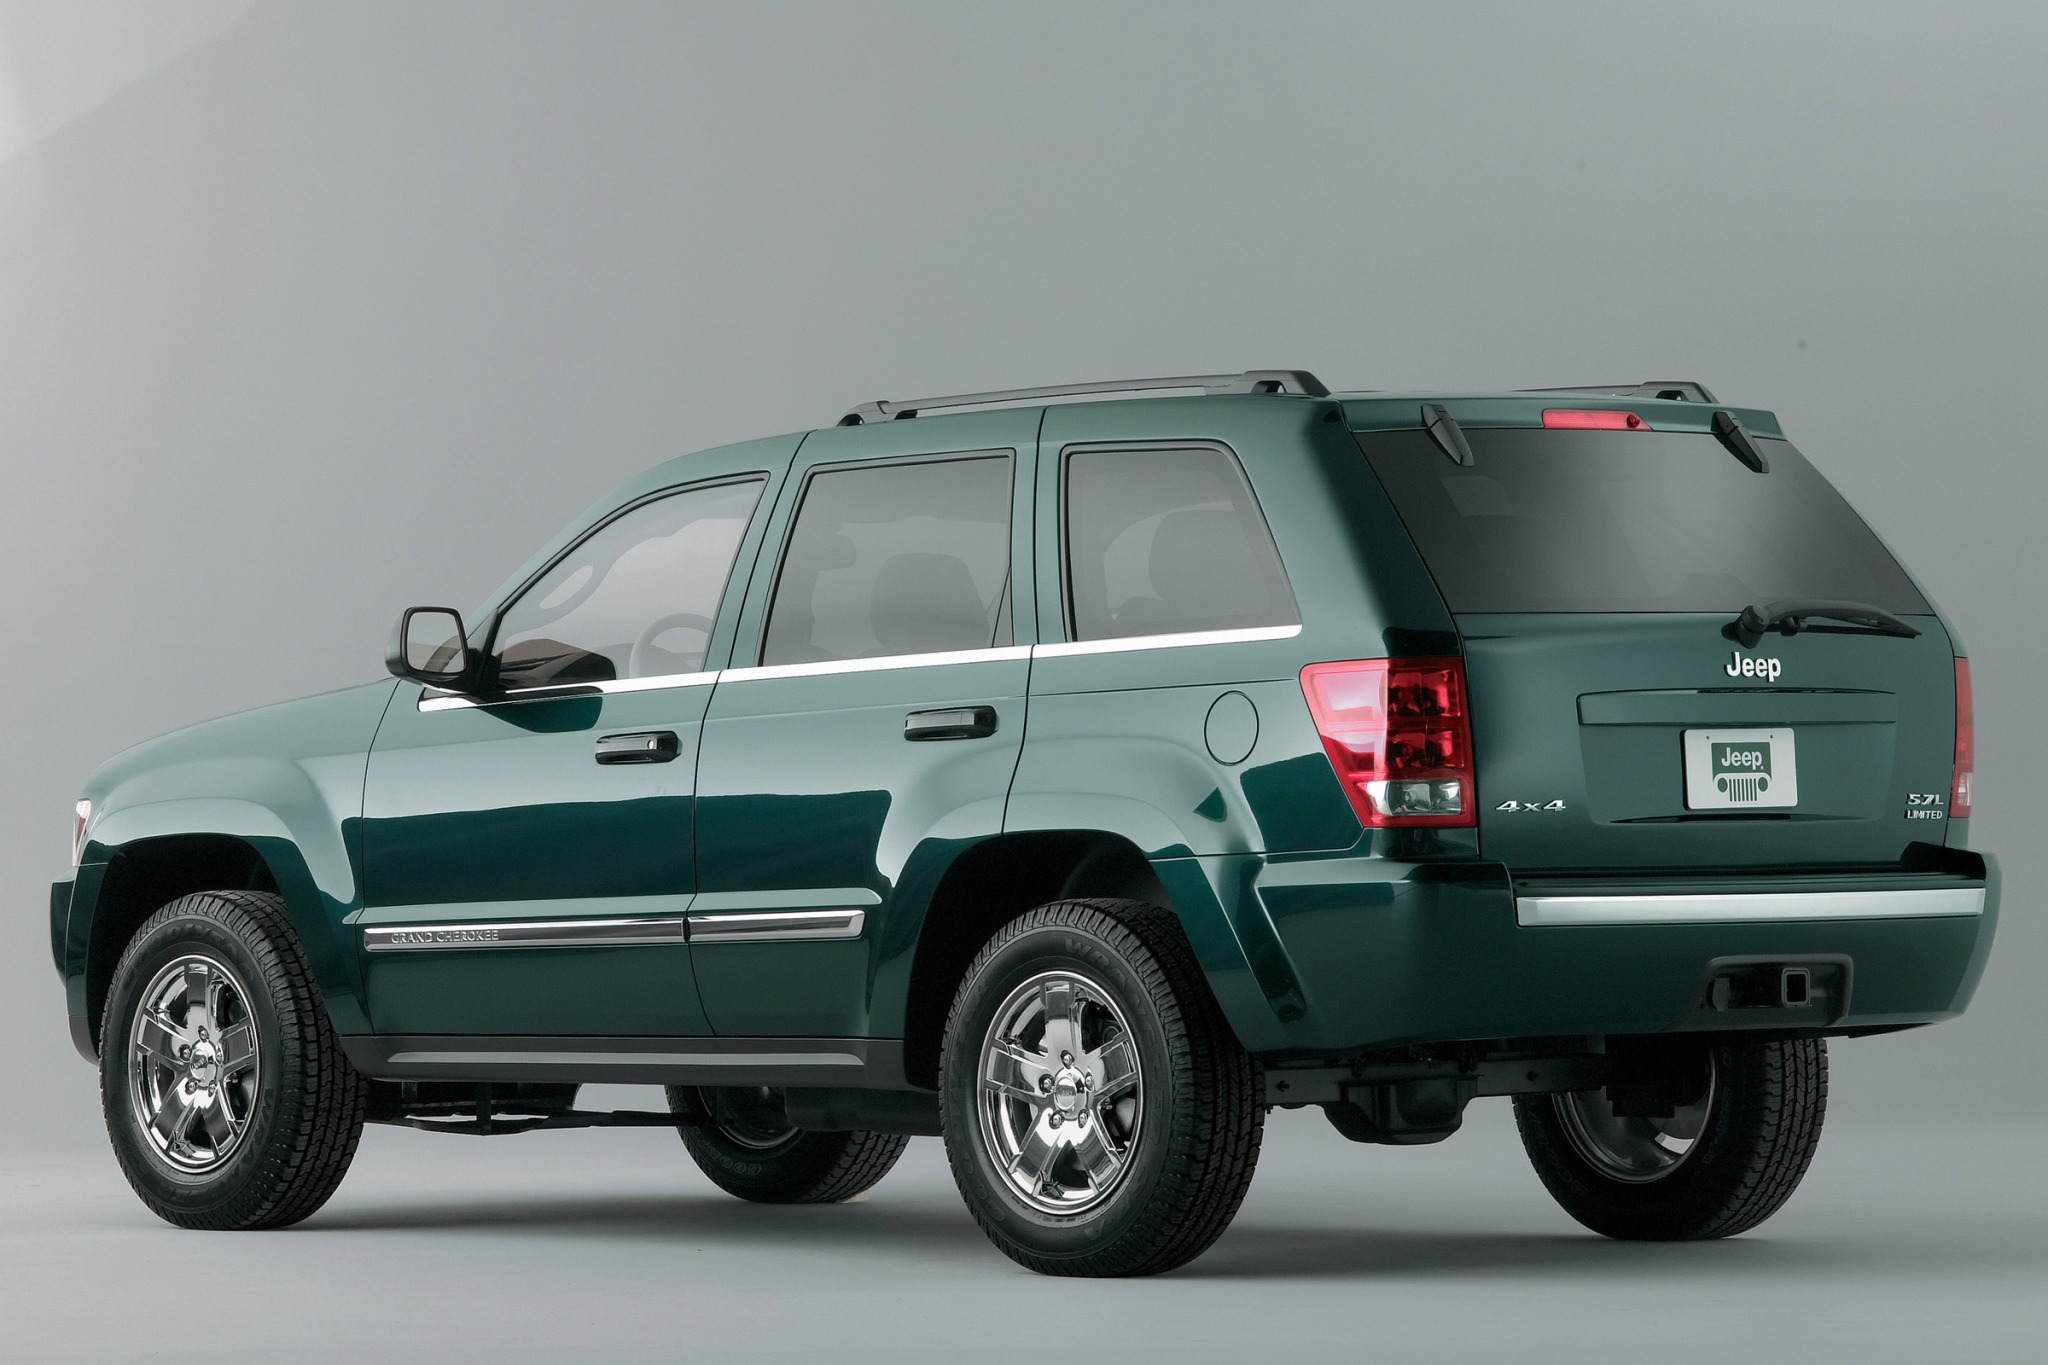 2007 jeep grand cherokee - information and photos - zombiedrive